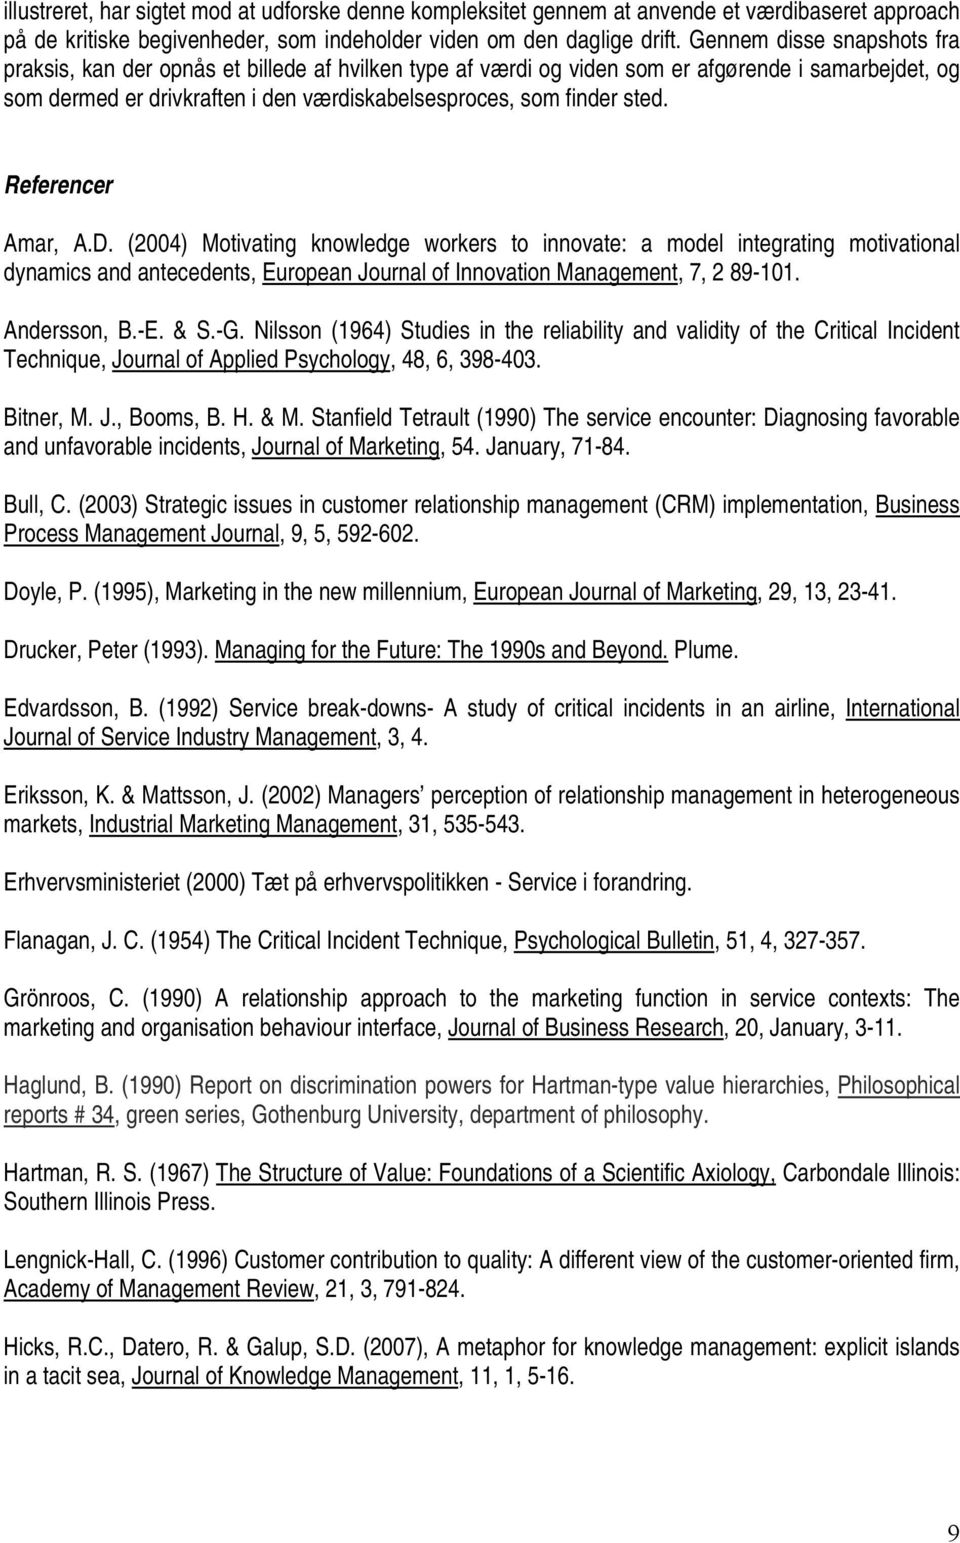 Referencer Amar, A.D. (2004) Motivating knowledge workers to innovate: a model integrating motivational dynamics and antecedents, European Journal of Innovation Management, 7, 2 89-101. Andersson, B.